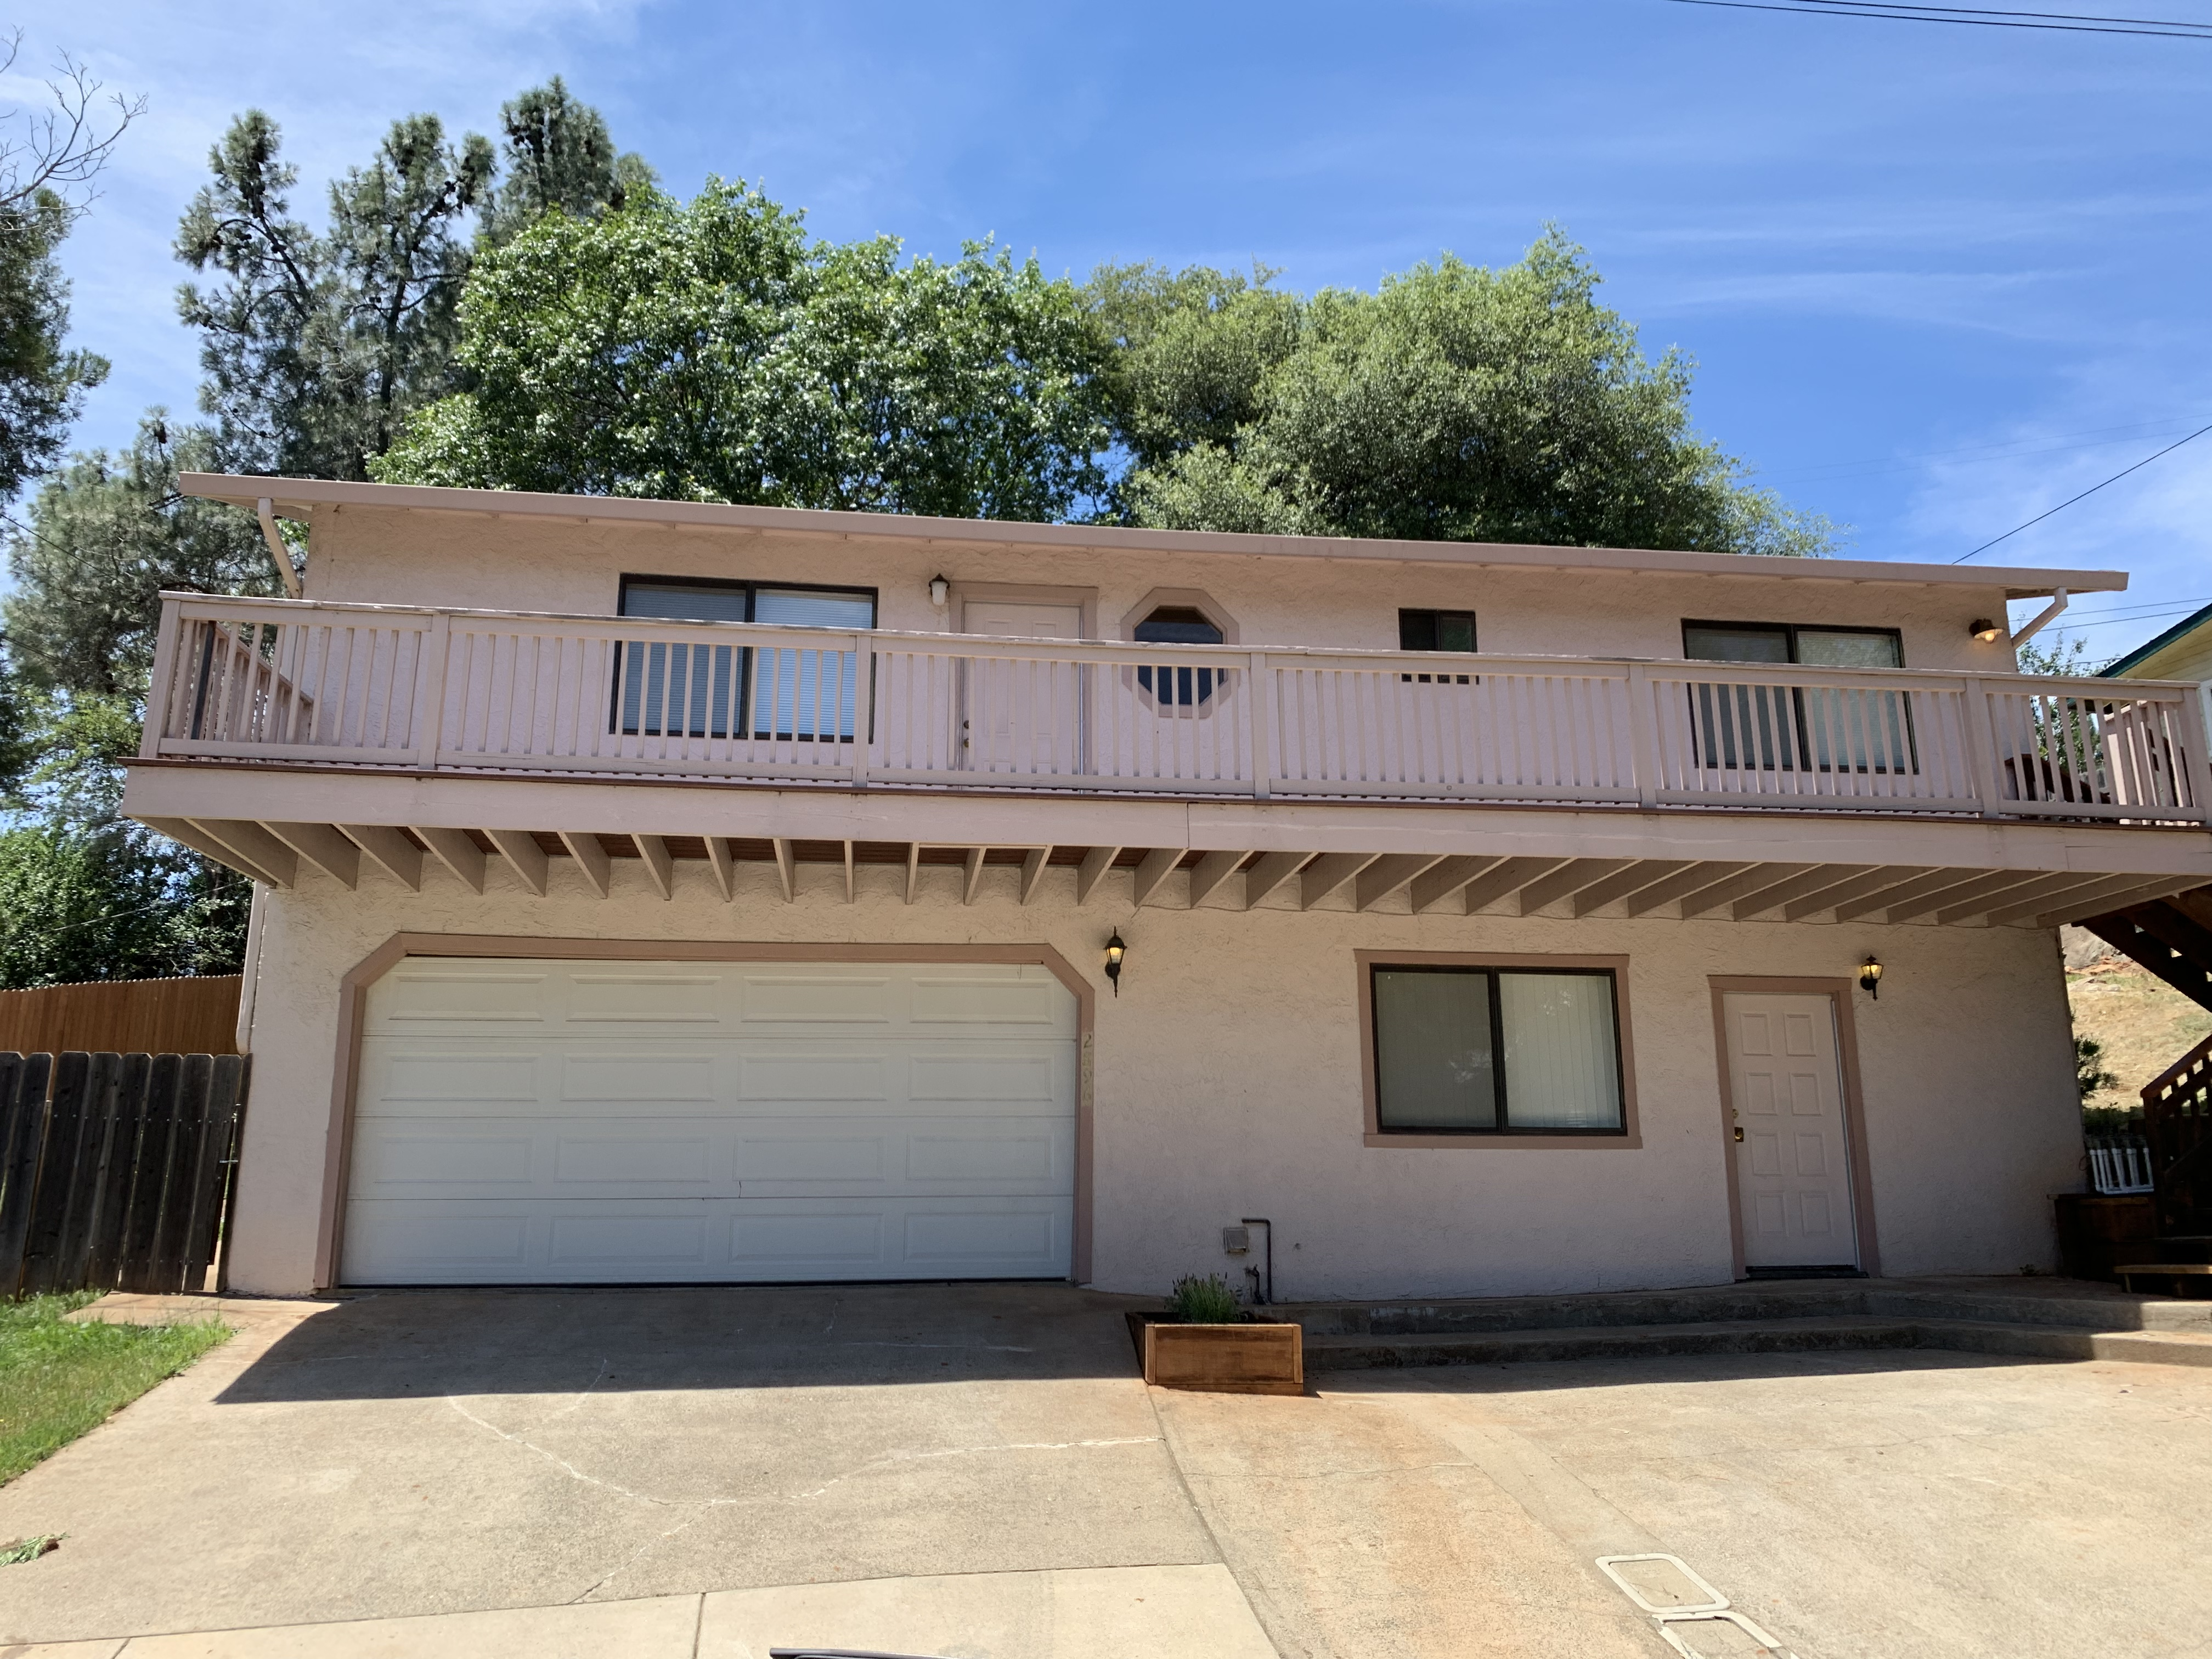 steve baker, graeme grant, Placerville realty, house for rent, home for rent, property manager, property management company, 762 Chamberlain Street - Placerville, front